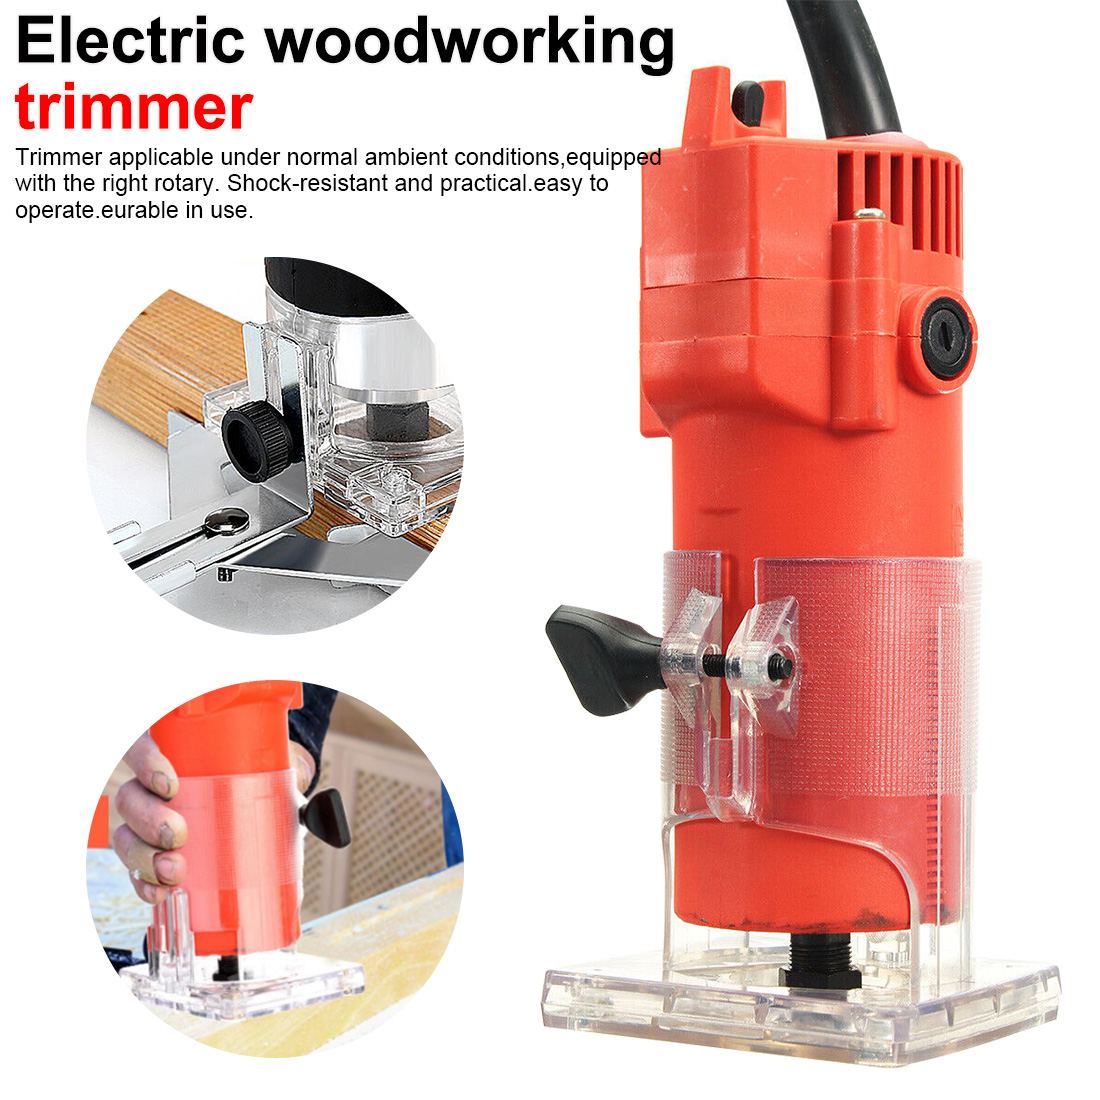 1pcs Electric Trimmer Wood Tool 220V 110V 1300W Wood Laminate Router 30000rpm Trimming Carving Milling Machine For Woodworking